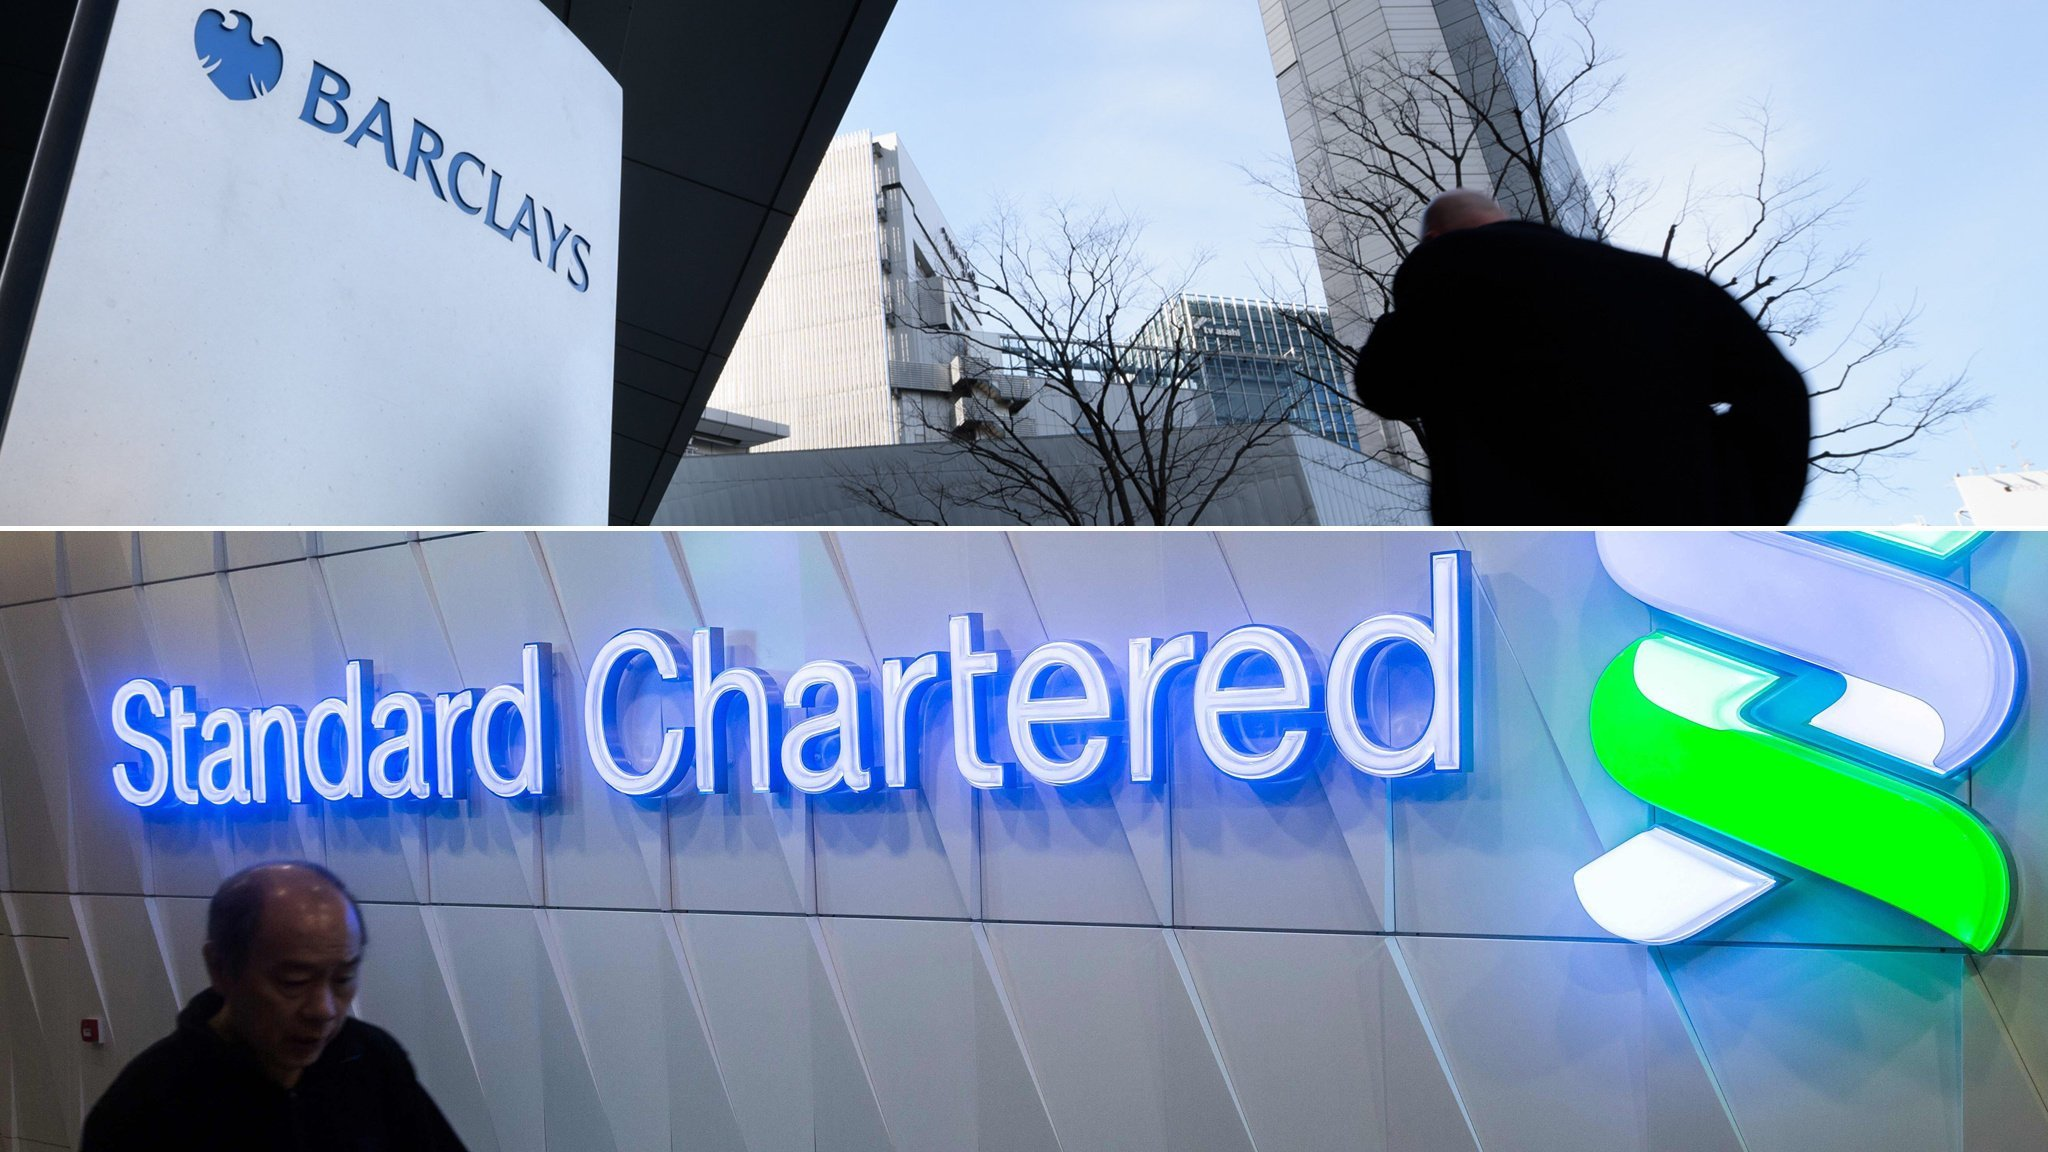 Standard Chartered Says The Grass Is Greener But It Is Unusual Financial Times